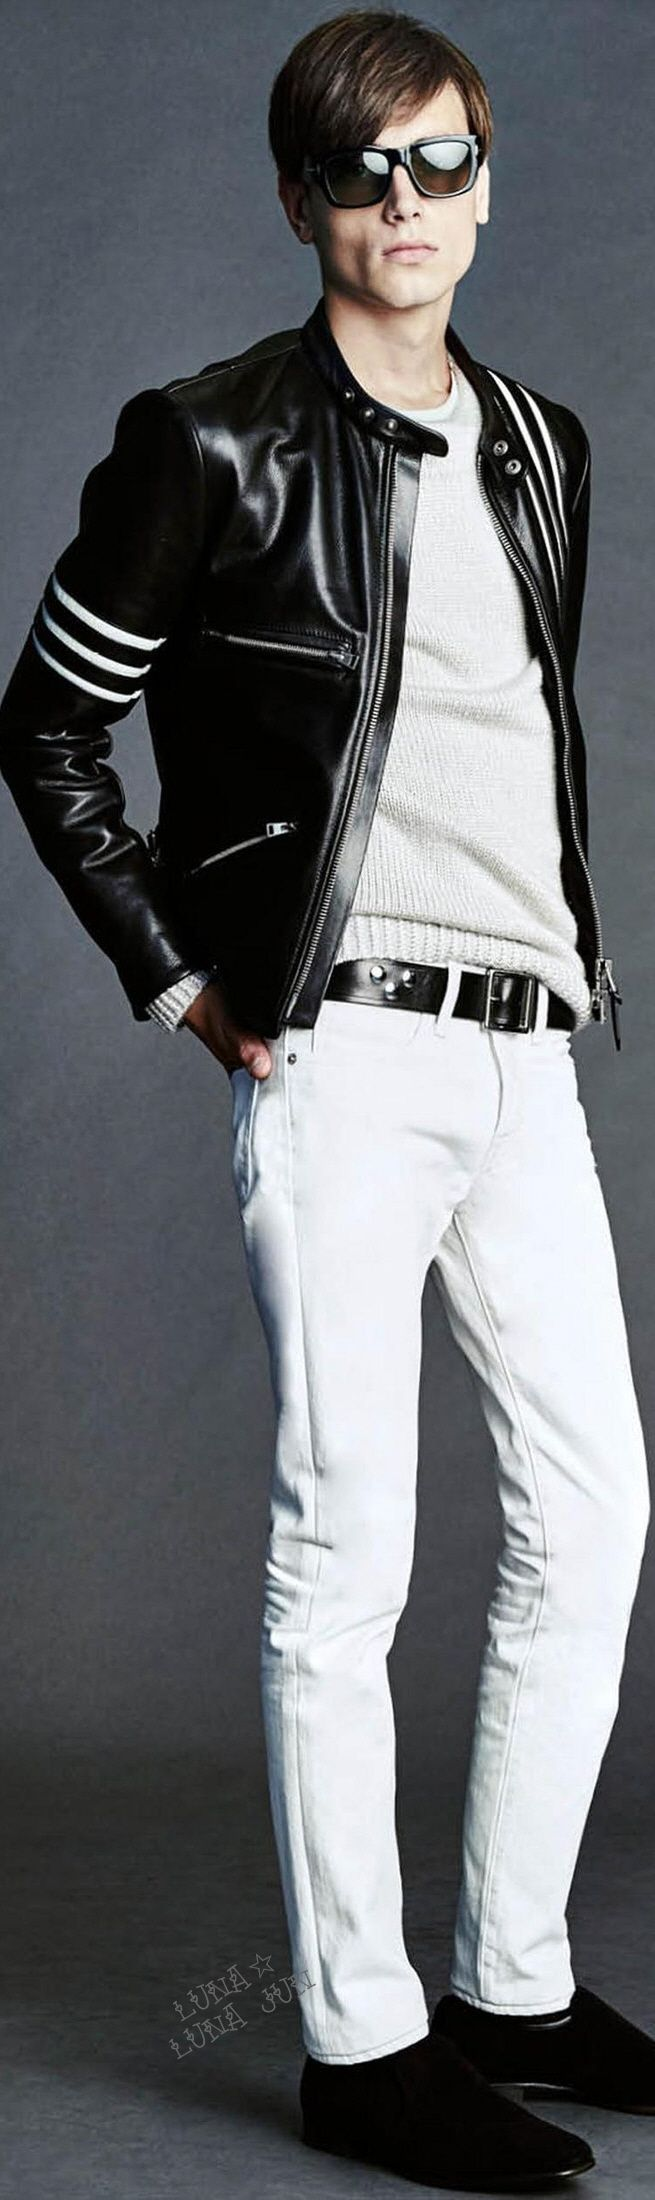 Black leather jacket and white ultra fit jeans. Tom Ford Spring 2016 Menswear